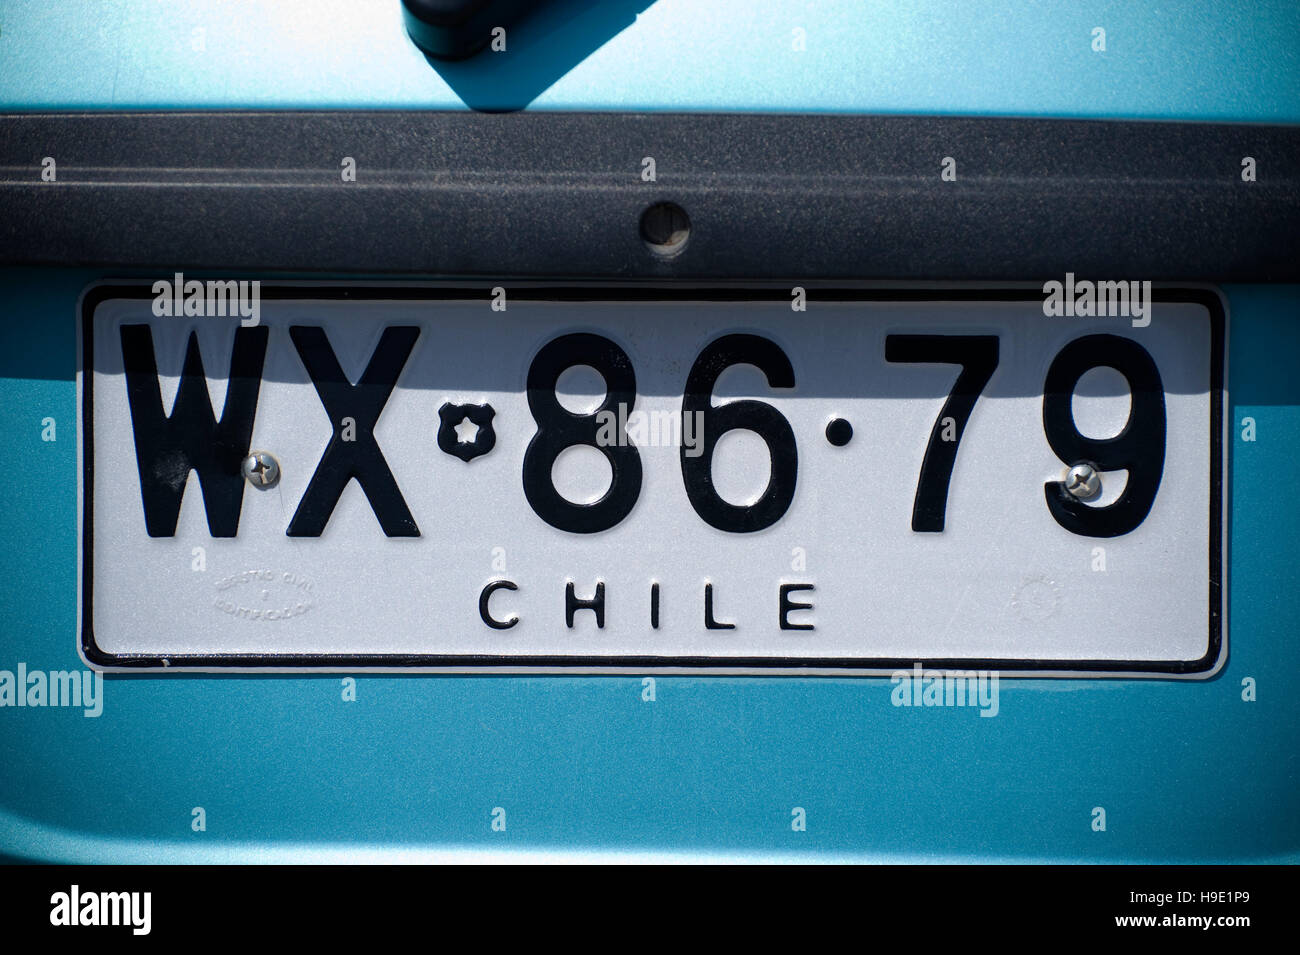 License plate number, Chile, South America Stock Photo